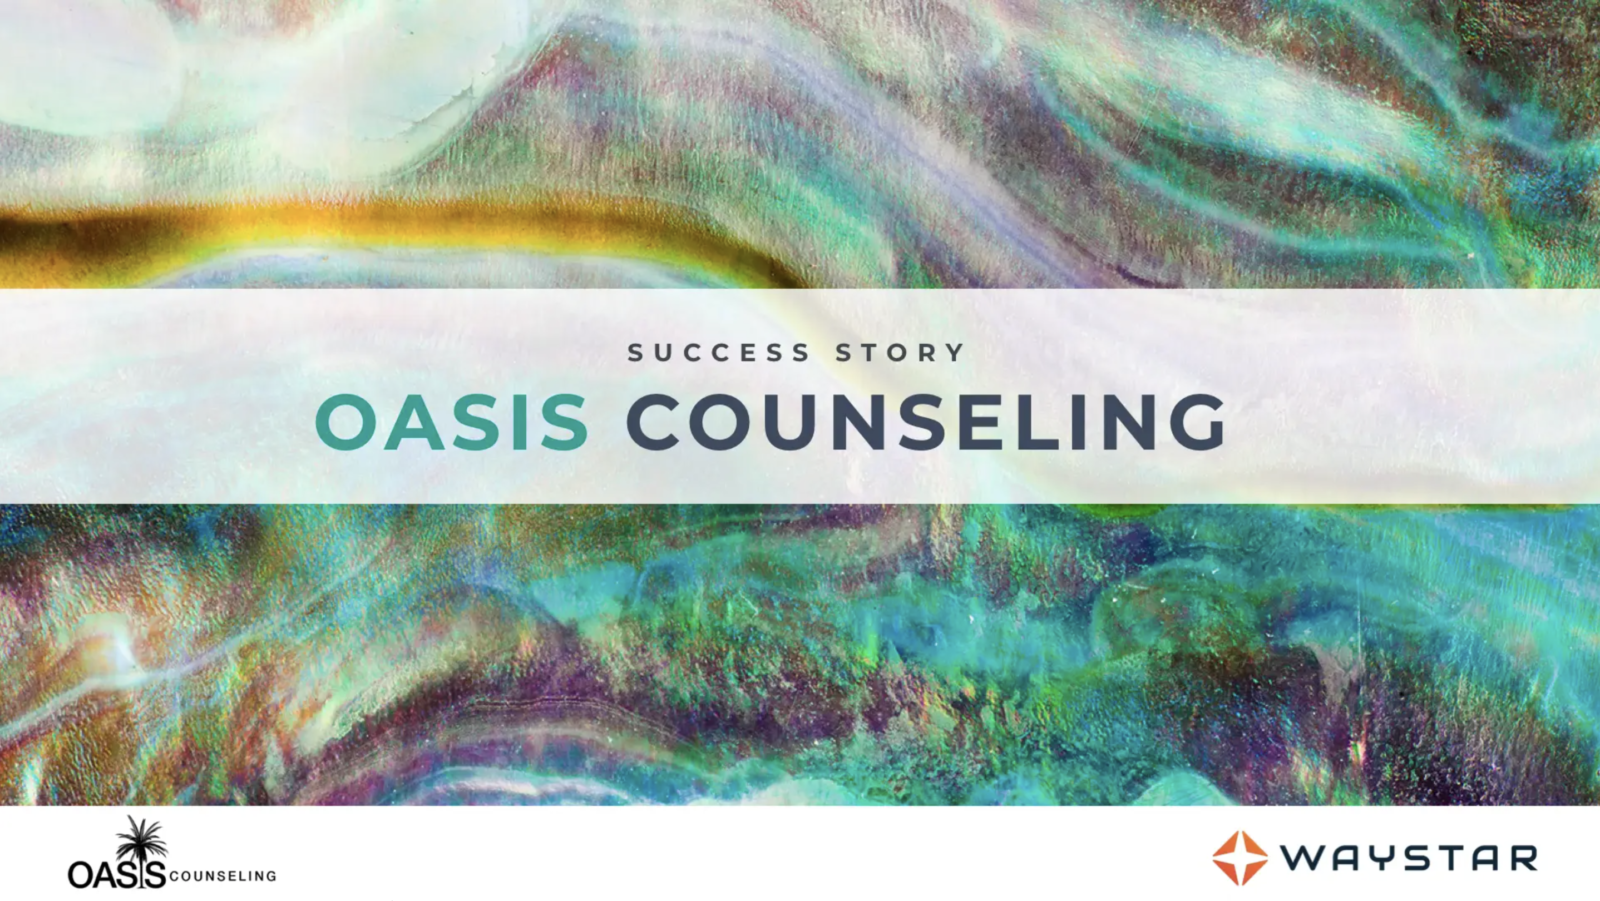 Success story: Oasis Counseling